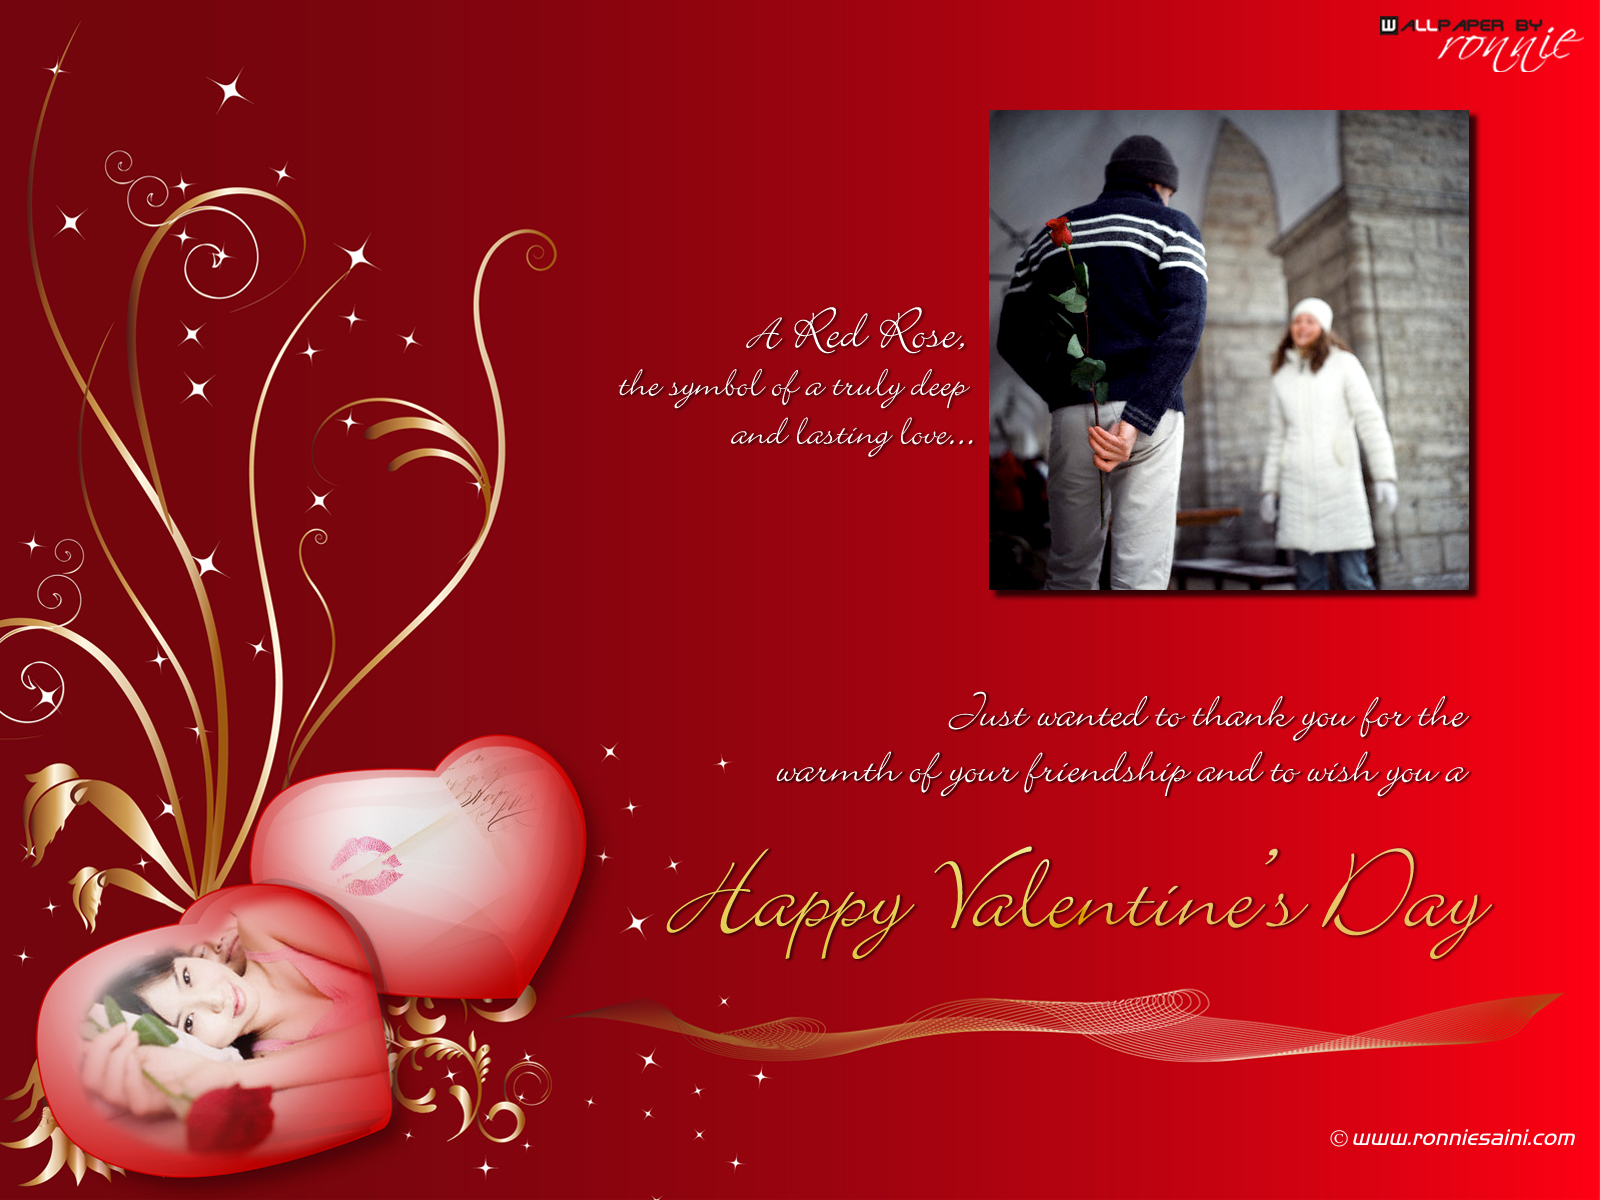 valentines-day-ecards-pictures-images-